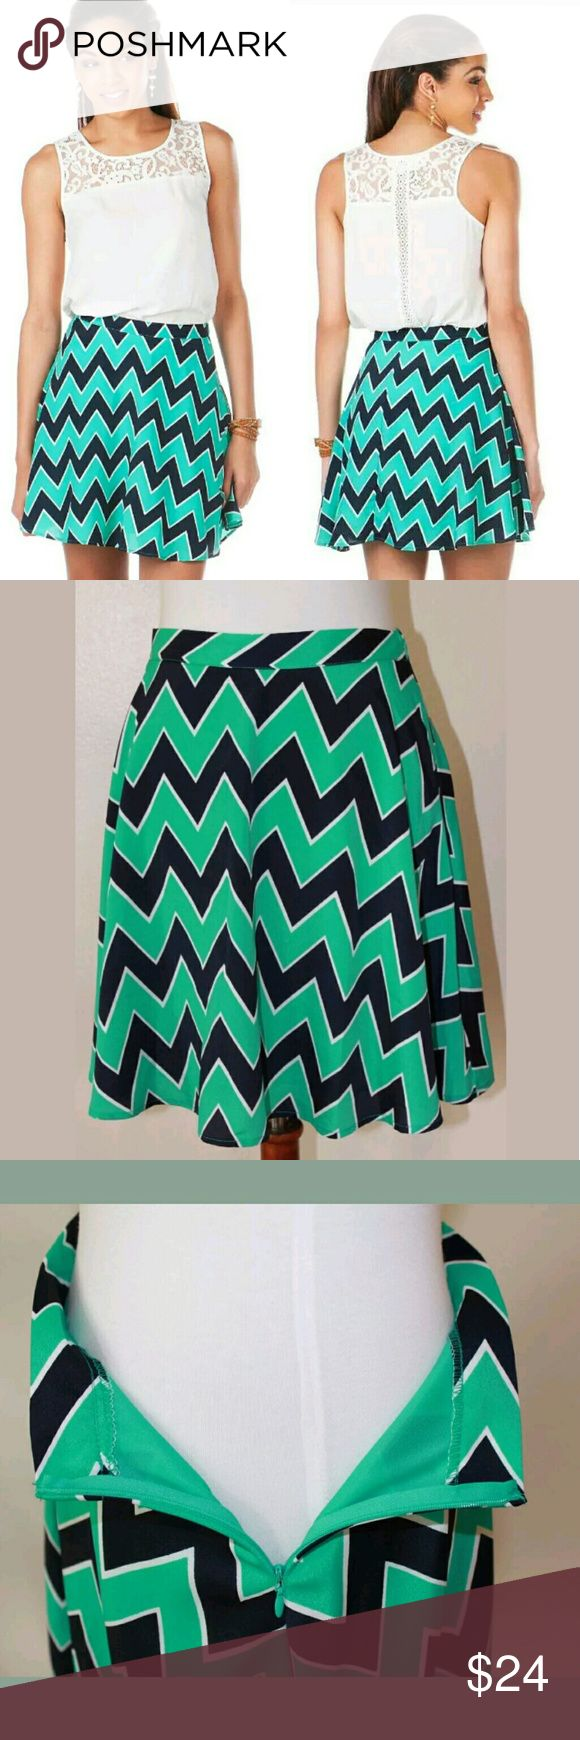 Francesca's Medium Navy Mint North Chevron Skirt Chevron is back with the North Shore Chevron Skirt! Navy and mint are the perfect color combo in this chevron skater skirt. Finished with a side seam zipper.   Measurements (approximately) - 18? length  - 27? waist  Shell and lining: 100% Polyester  Made in the U.S.A.  Smoke free home. Buttons Skirts Midi